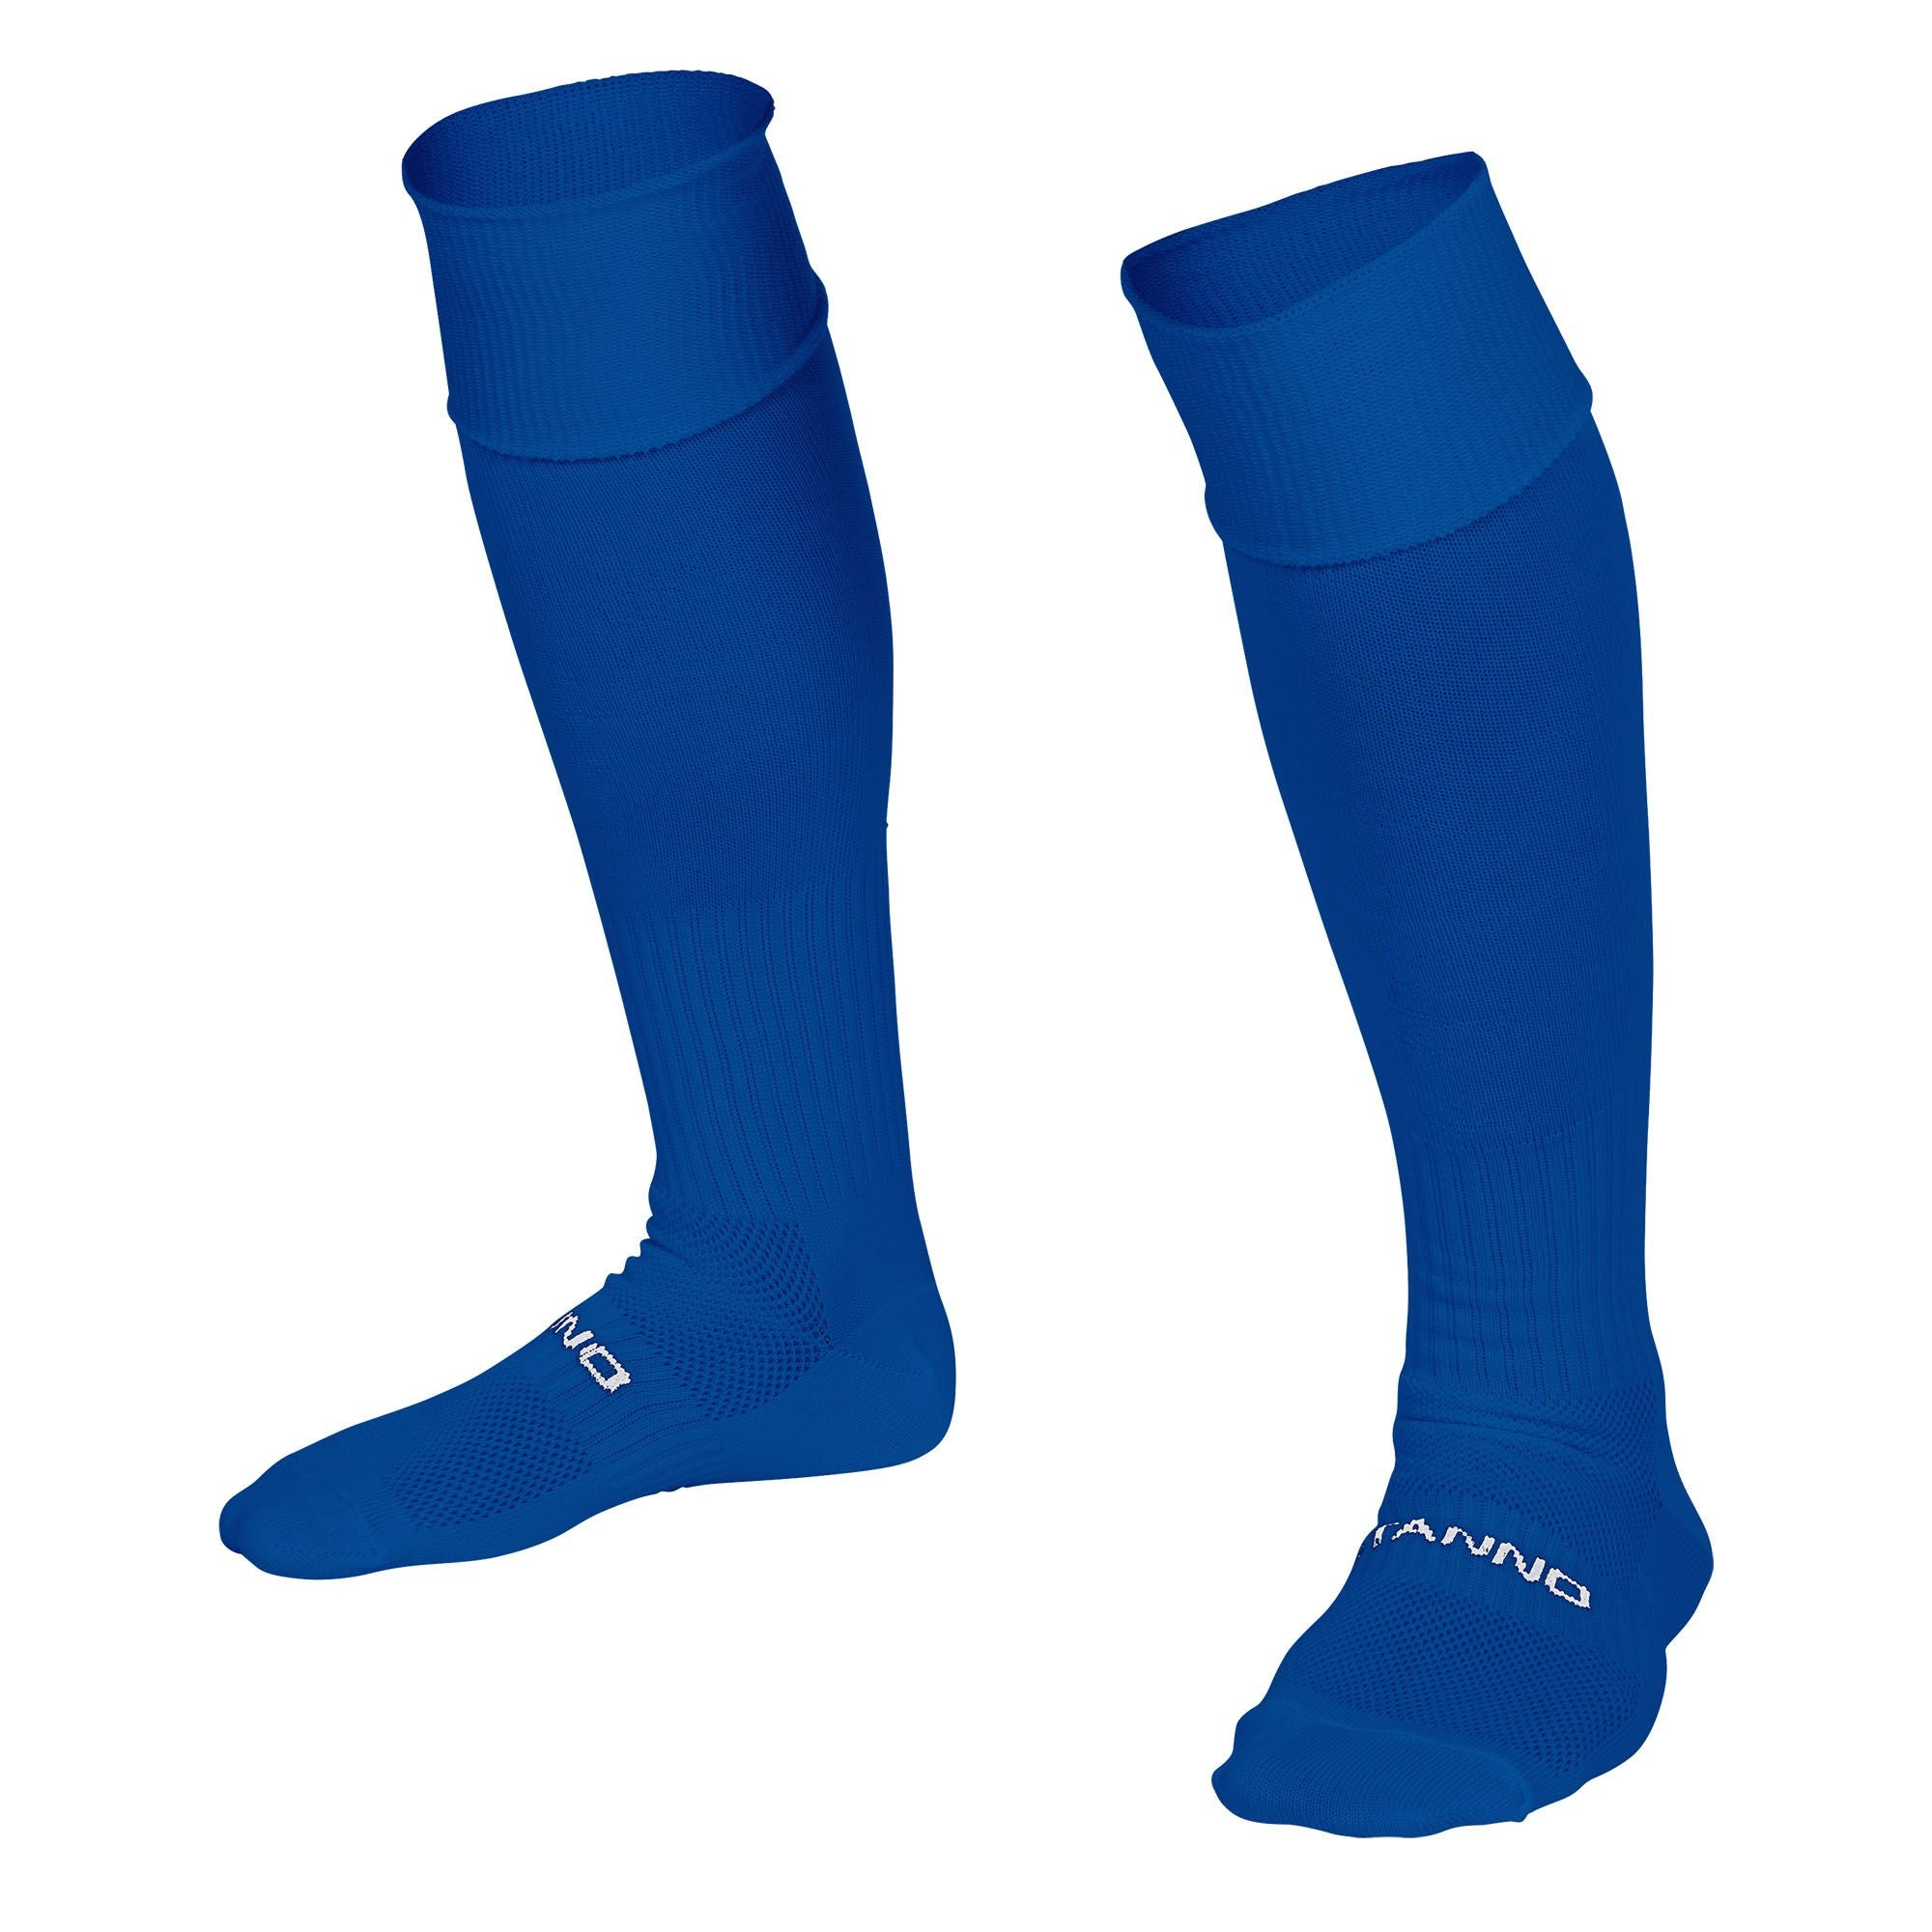 Stanno Park sock in royal blue with Stanno text across the top of the foot.